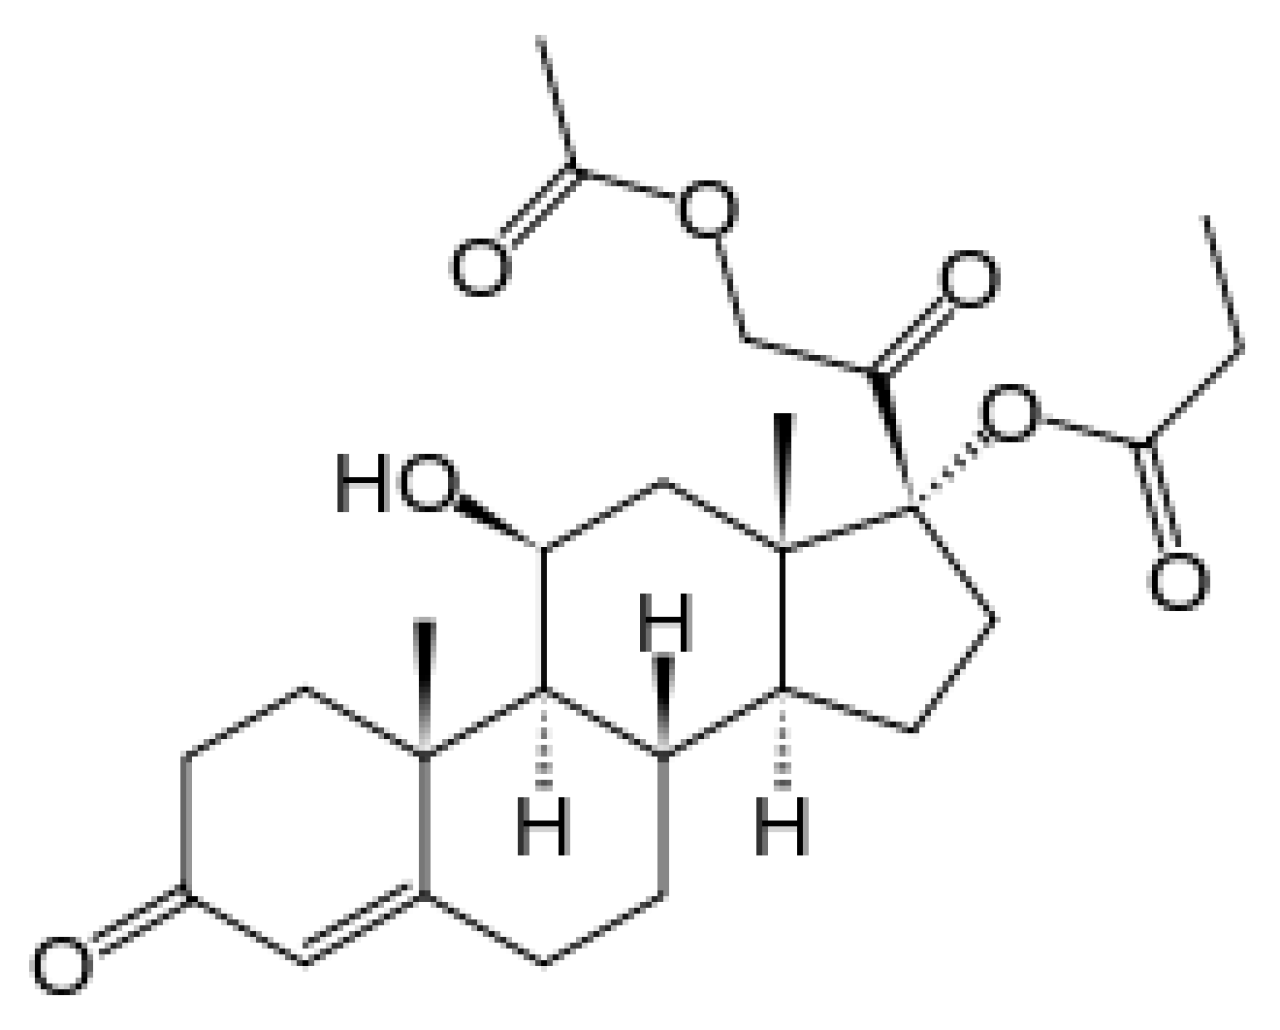 hydrocortisone-aceponate-chemical-structure